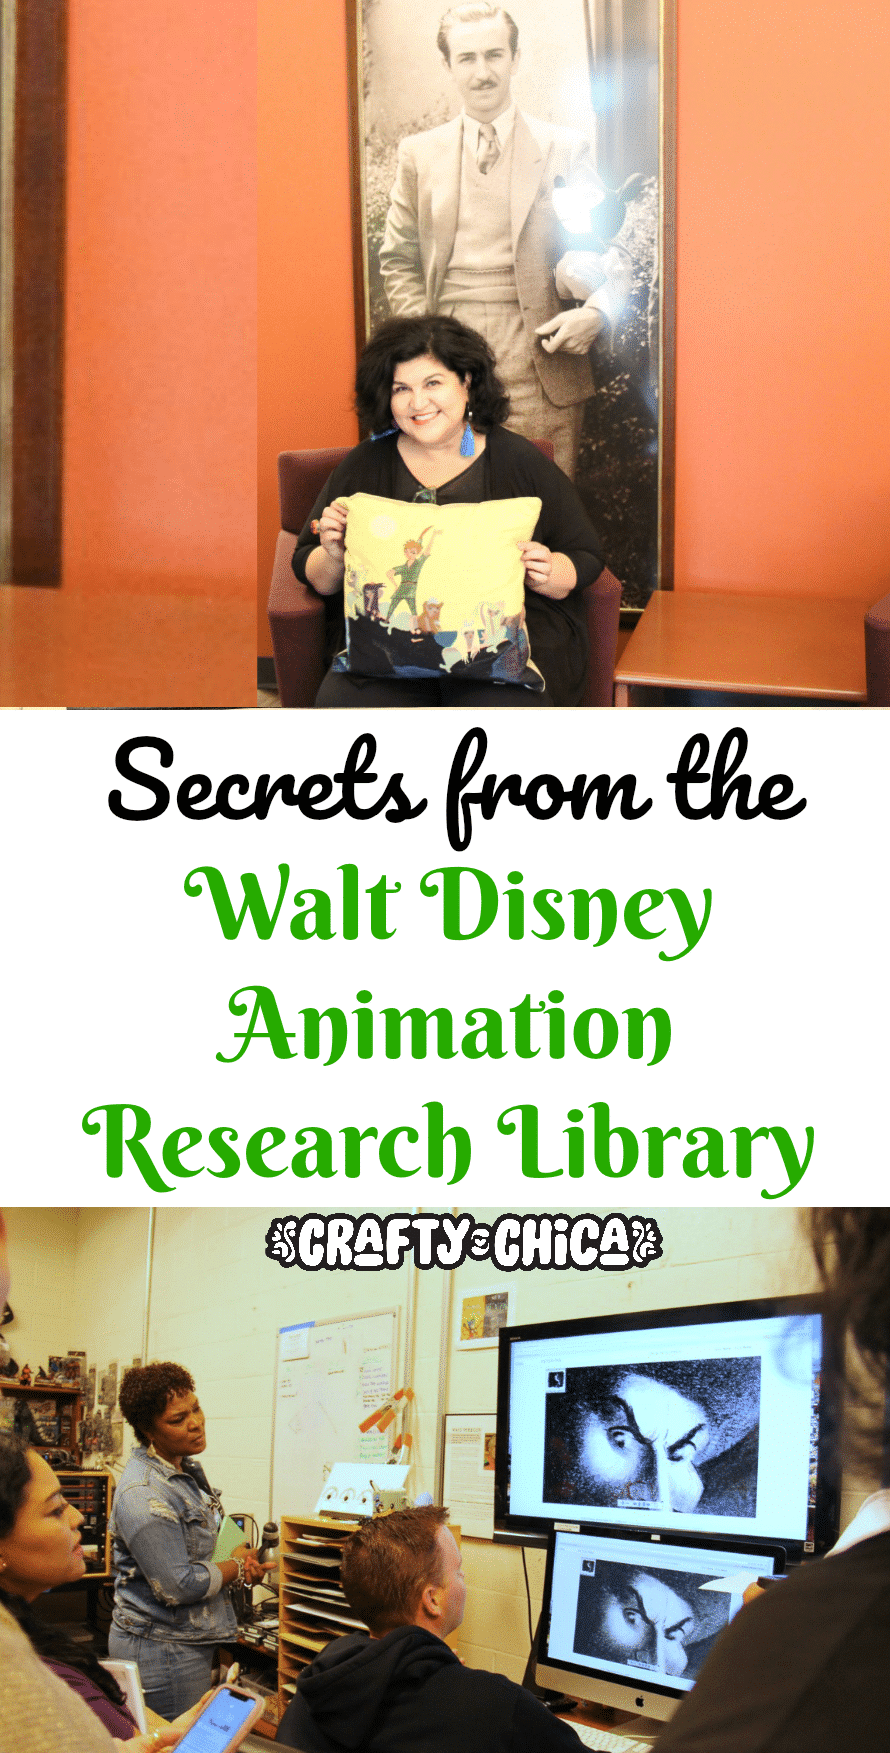 Crafty Chica at Disney Animation Research Library.